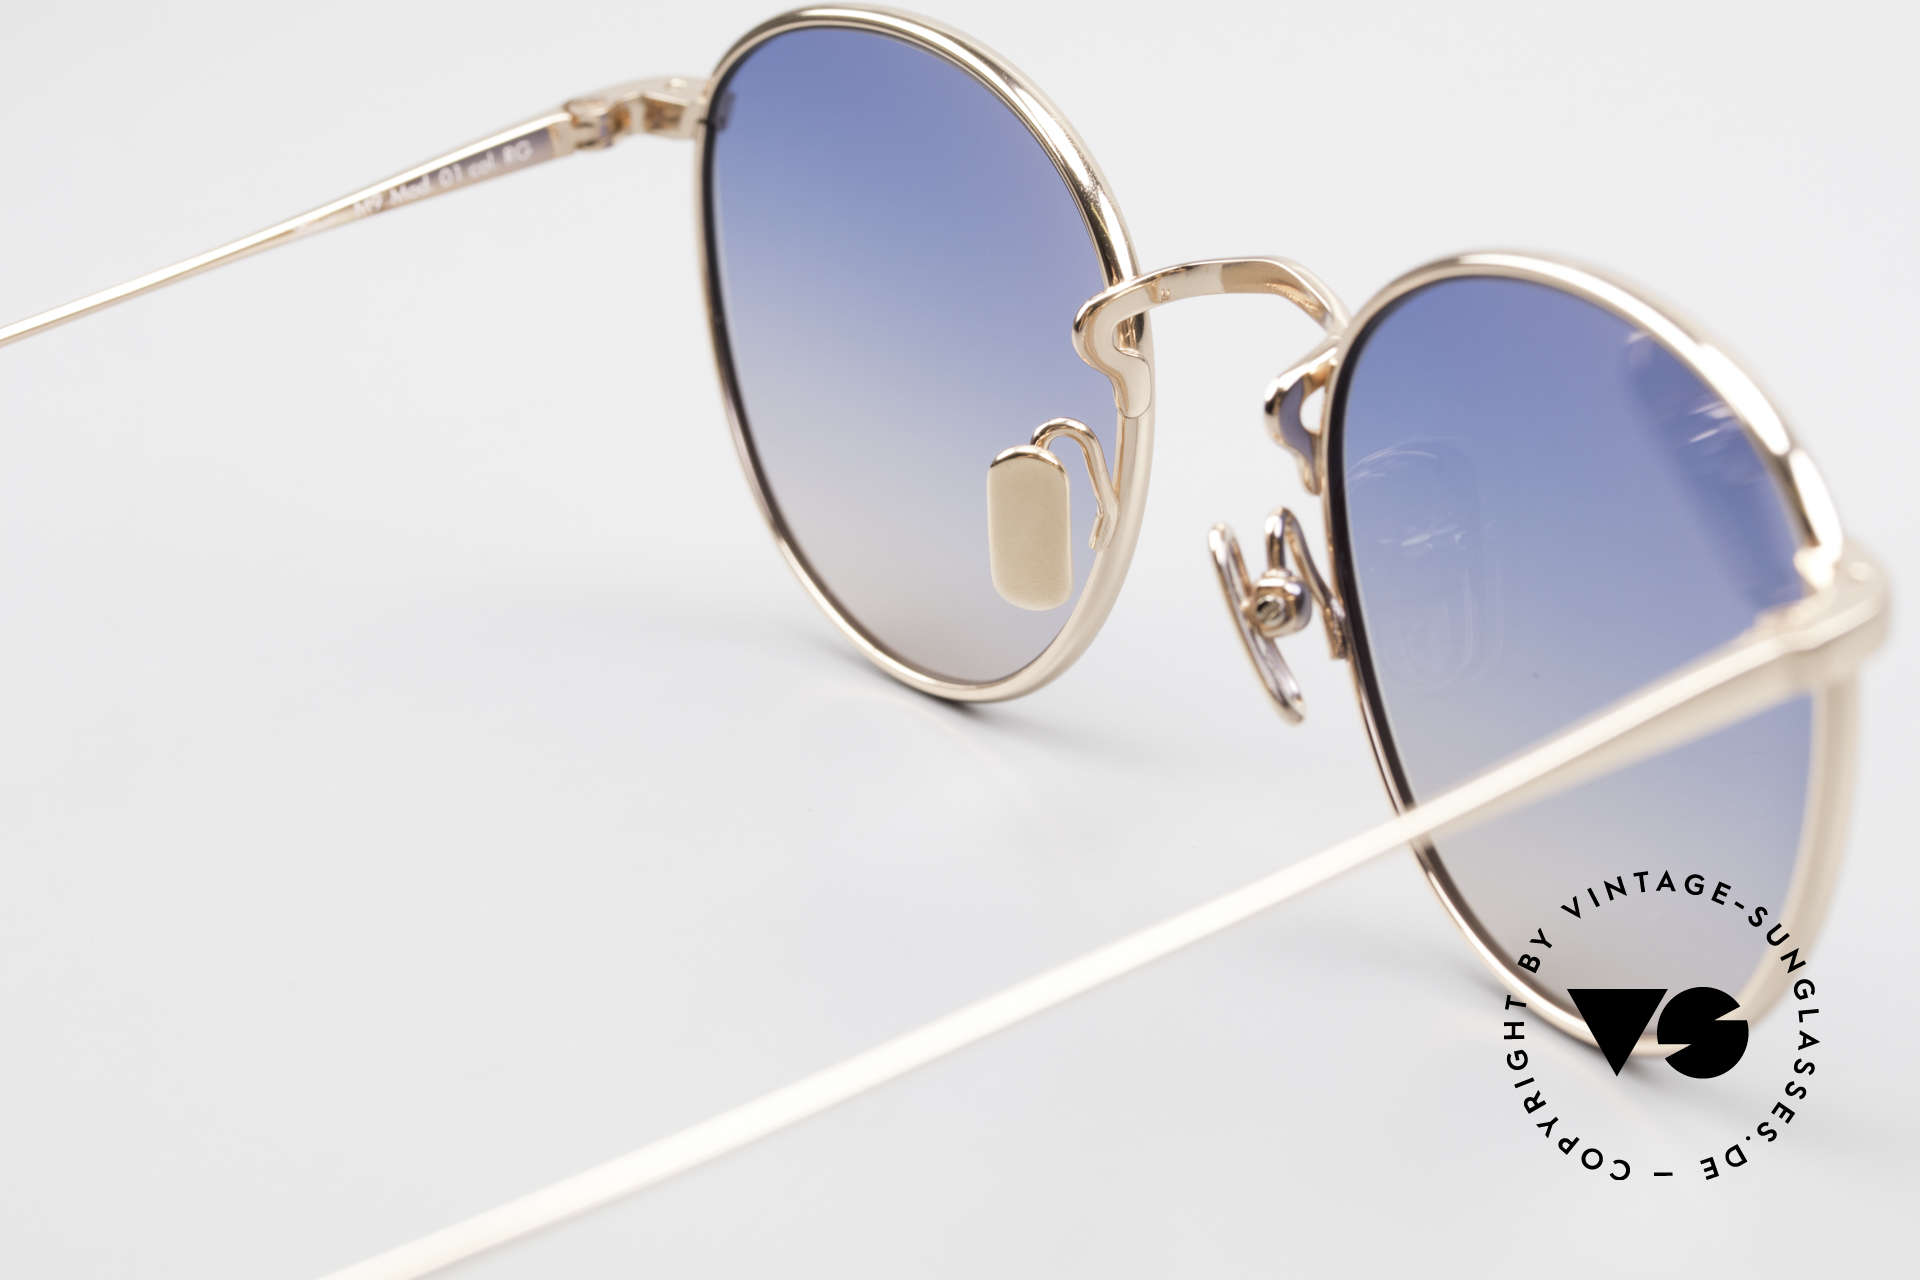 Lunor M9 Mod 01 RG Titan Sunglasses Rose Gold, of course, unworn (with an orig. leather case by LUNOR), Made for Men and Women